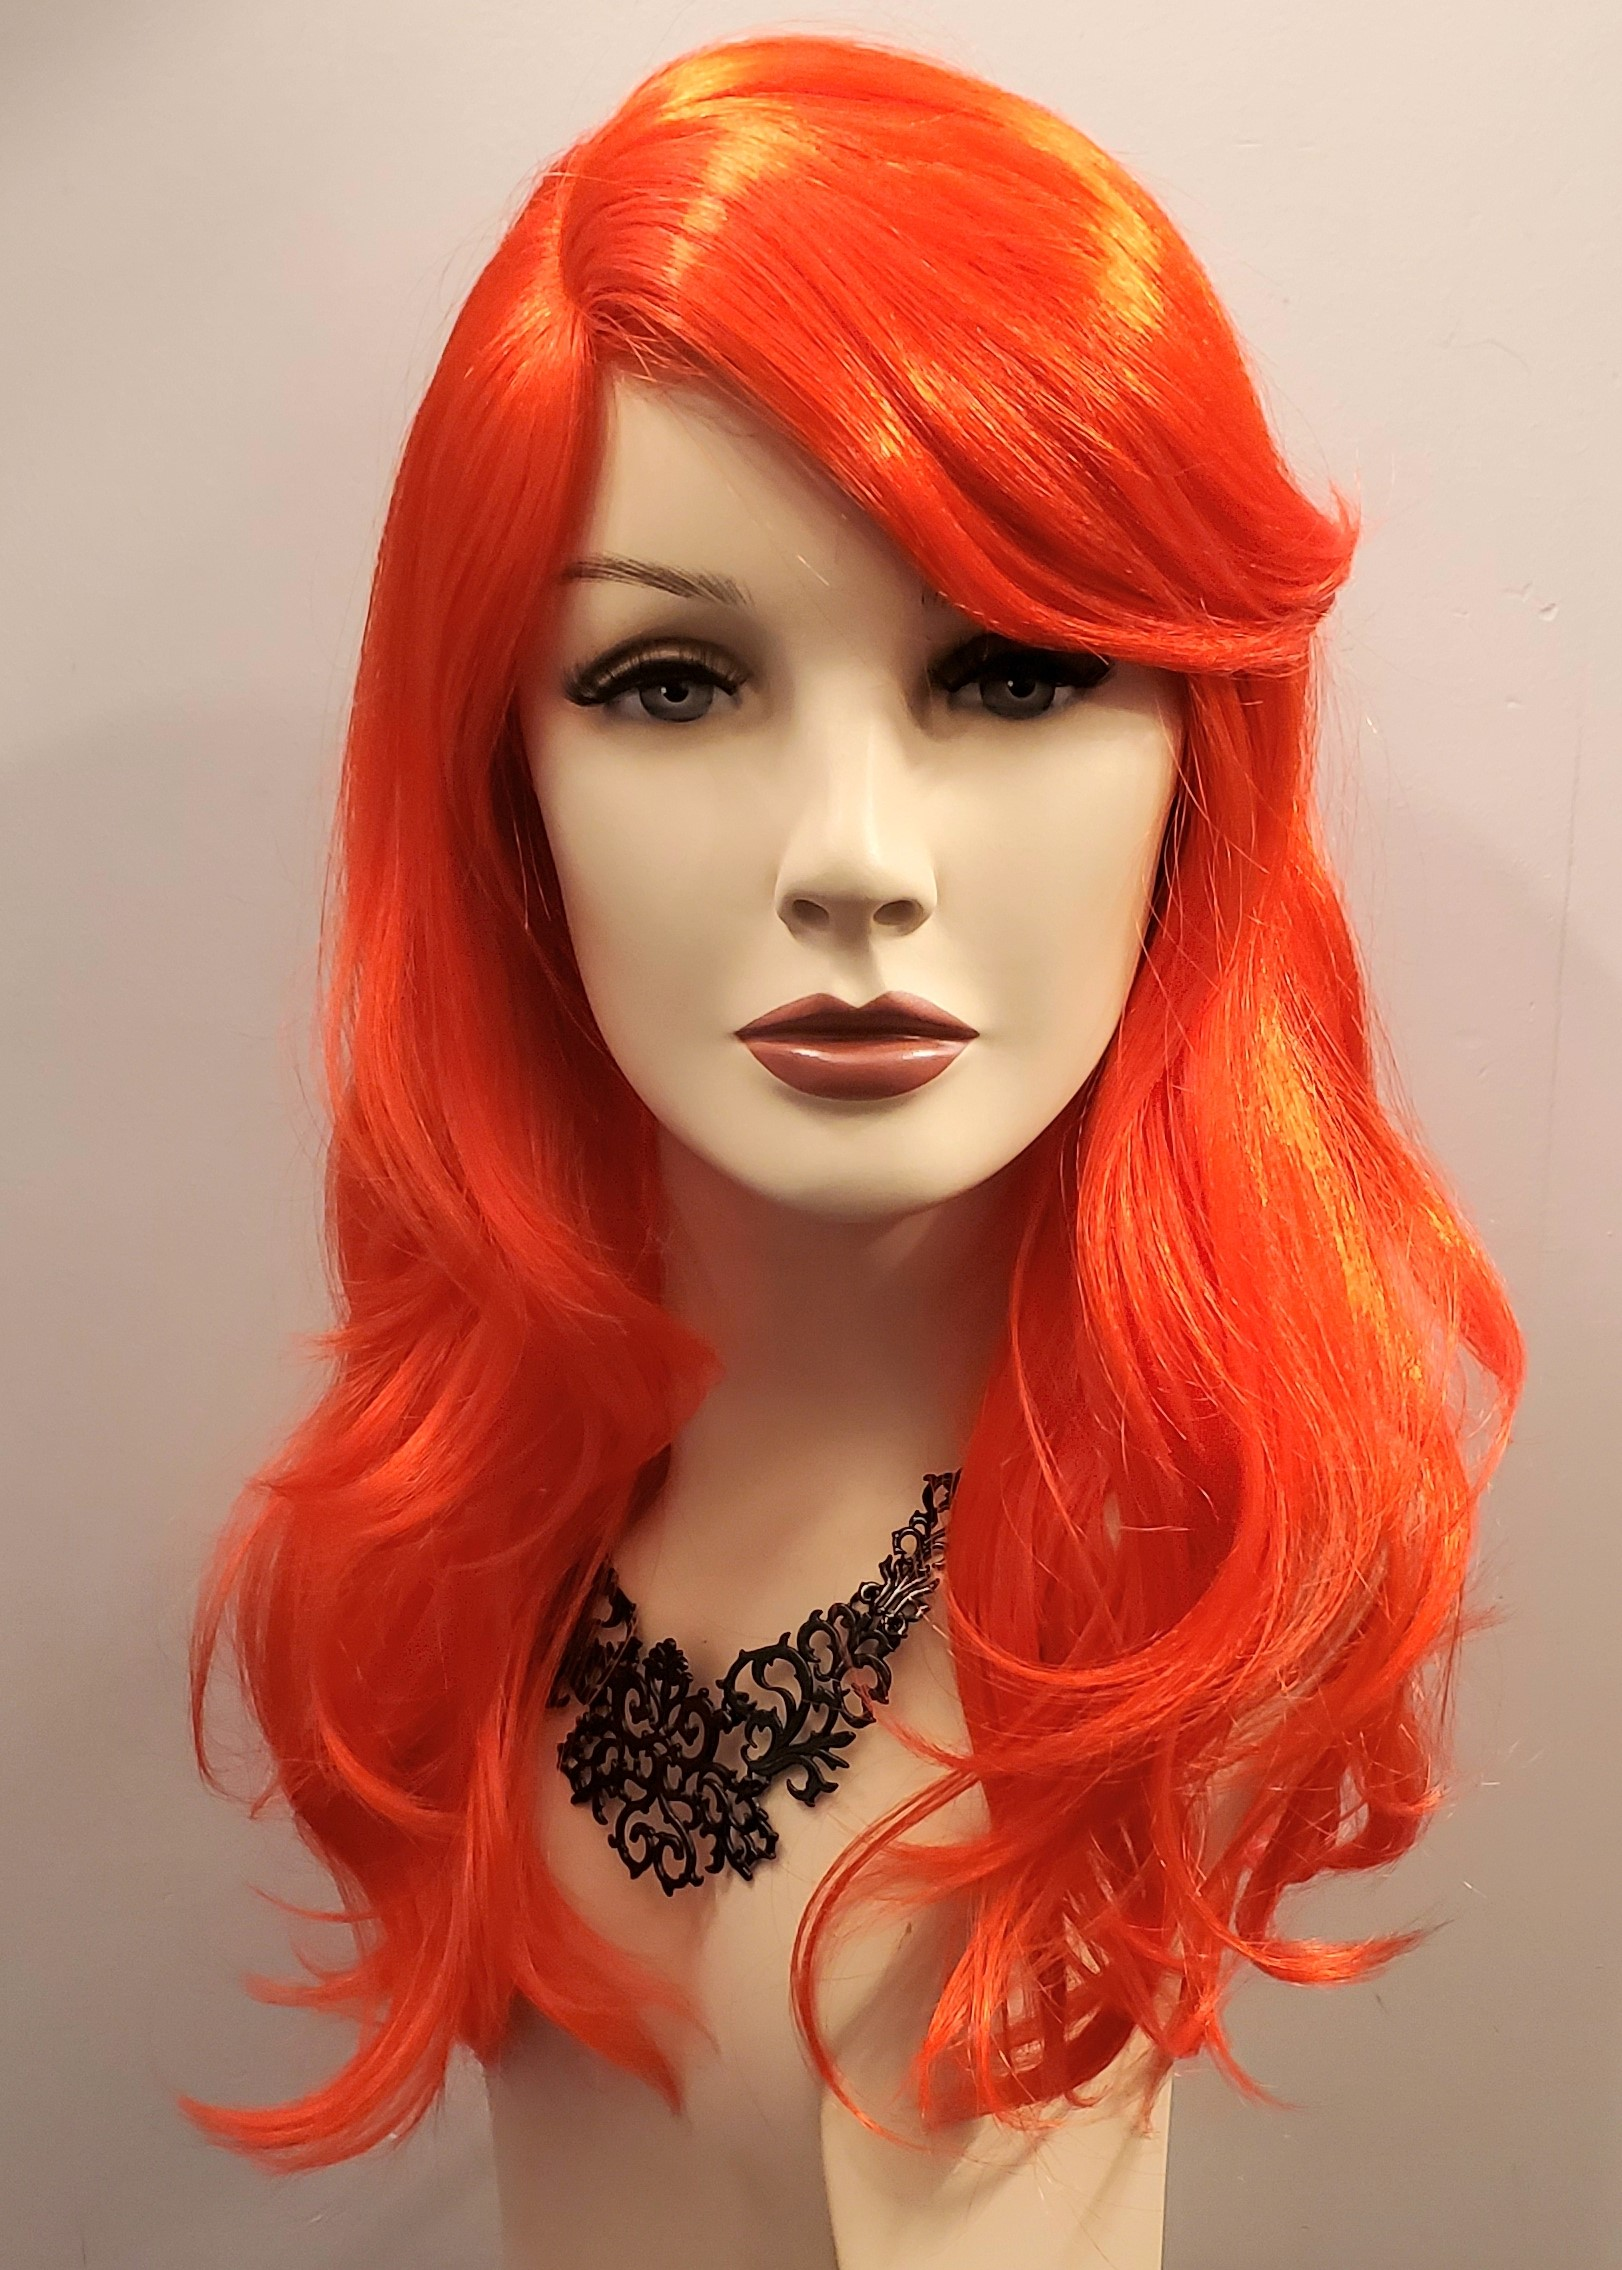 Mid-length wig features a natural part 0382 Edmonton